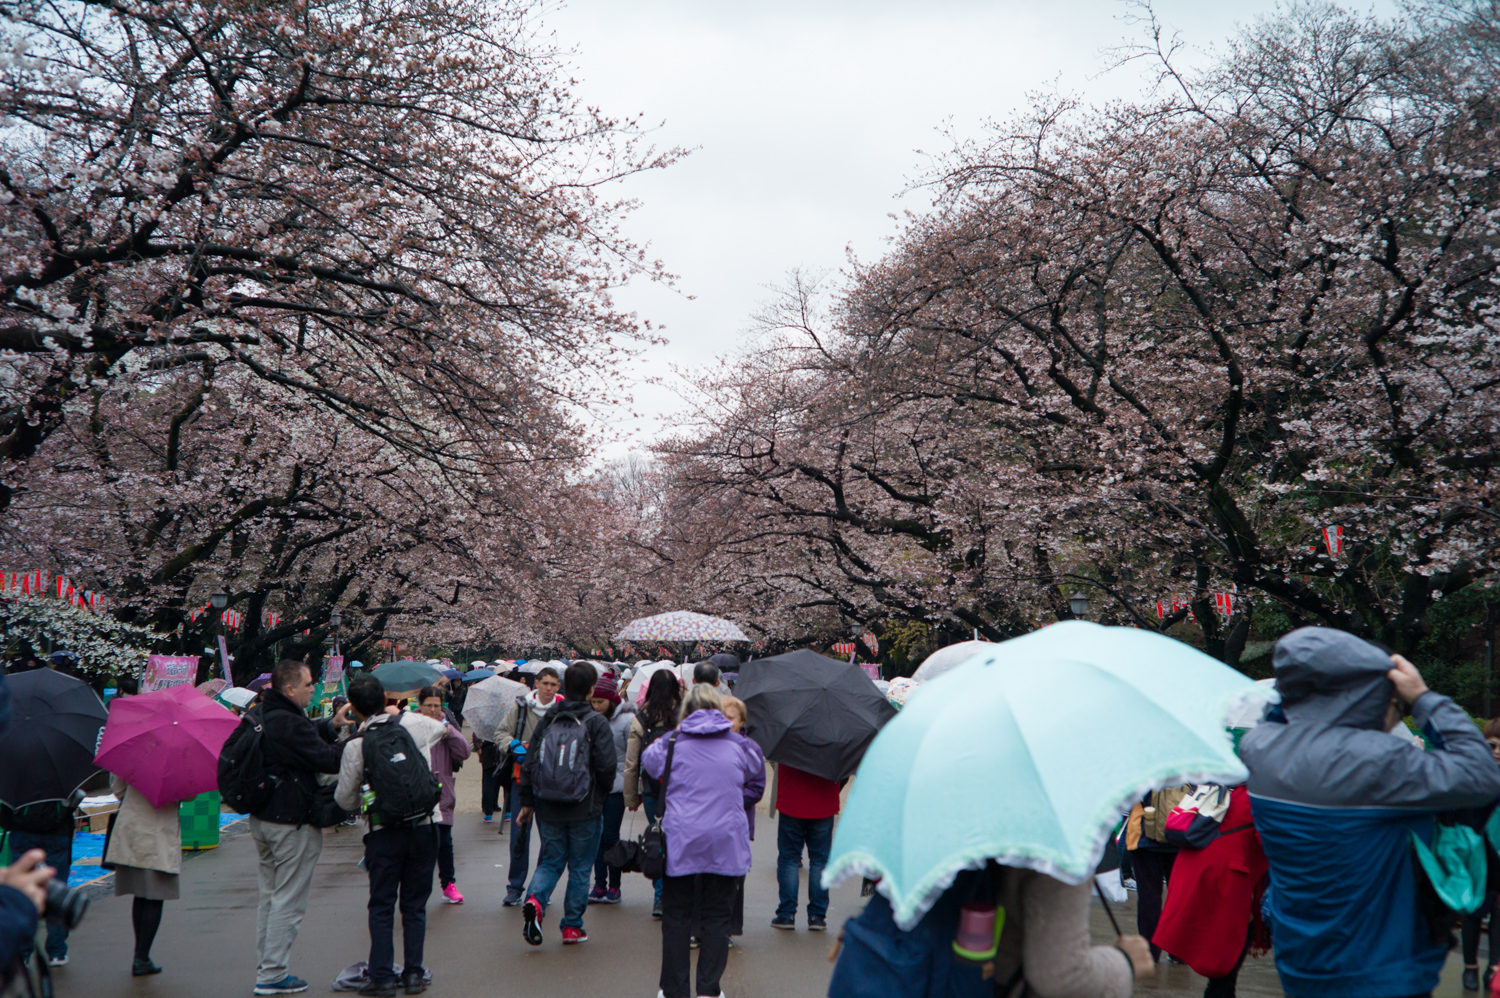 The famous Ueno Park during Cherry Blossom season